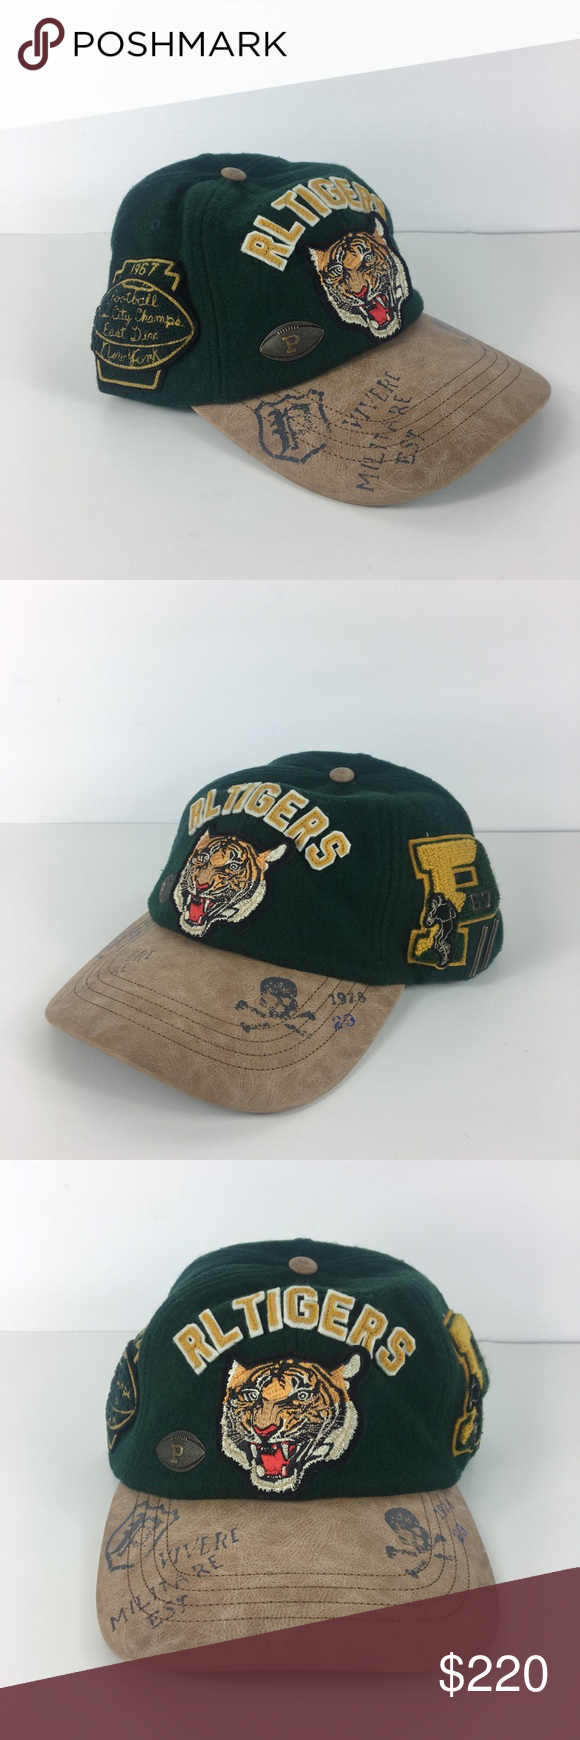 Polo Ralph Lauren Varsity Letterman Tigers Hat Polo Ralph Lauren Varsity  Letterman Tigers Football Hat Cap 6a611b2b6ca